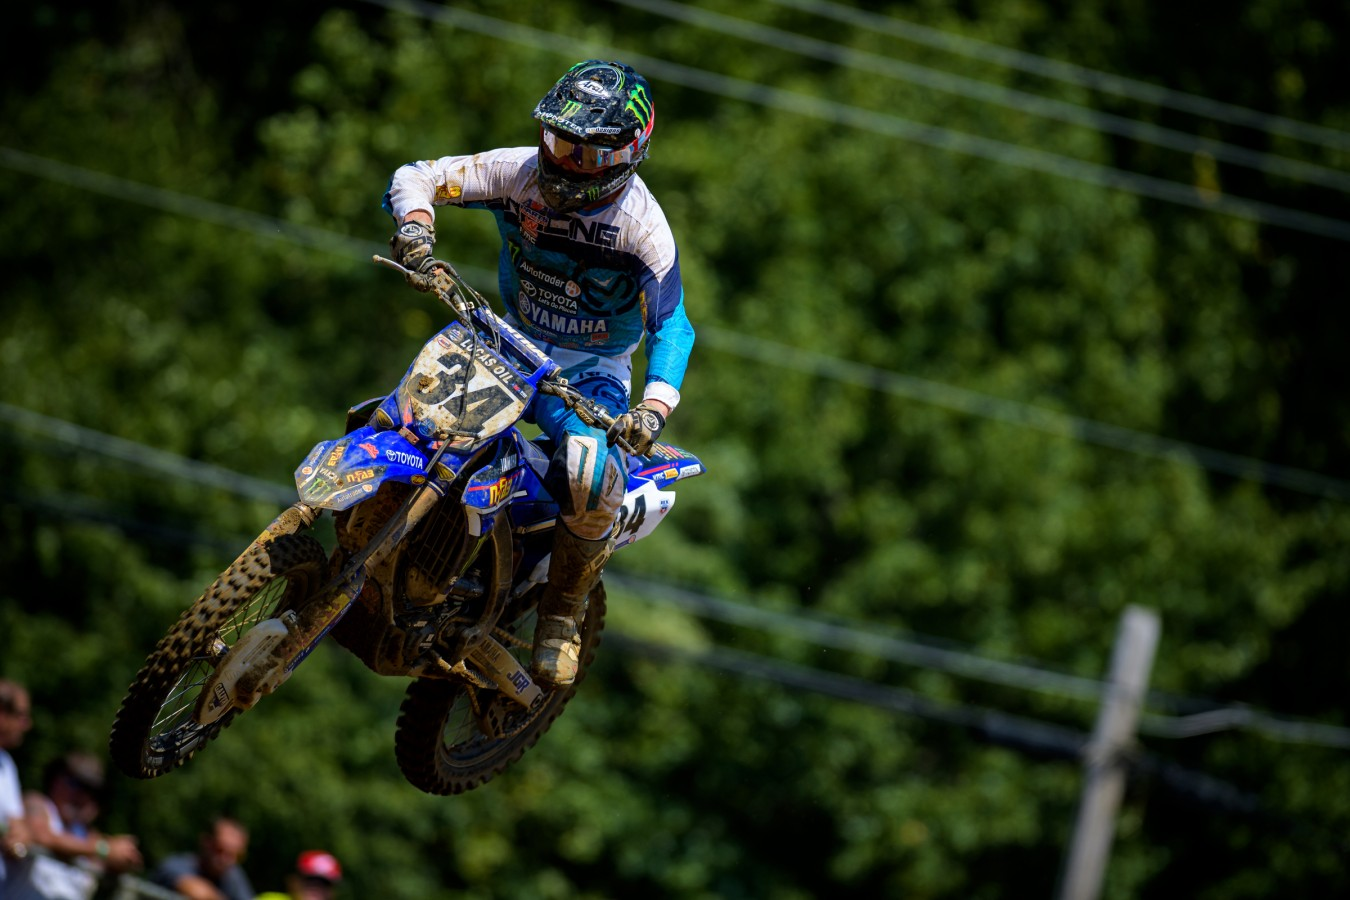 Phil Nicoletti during the 2016 Pro MX Nationals in Budds Creek Raceway - Mechanicsville, MD